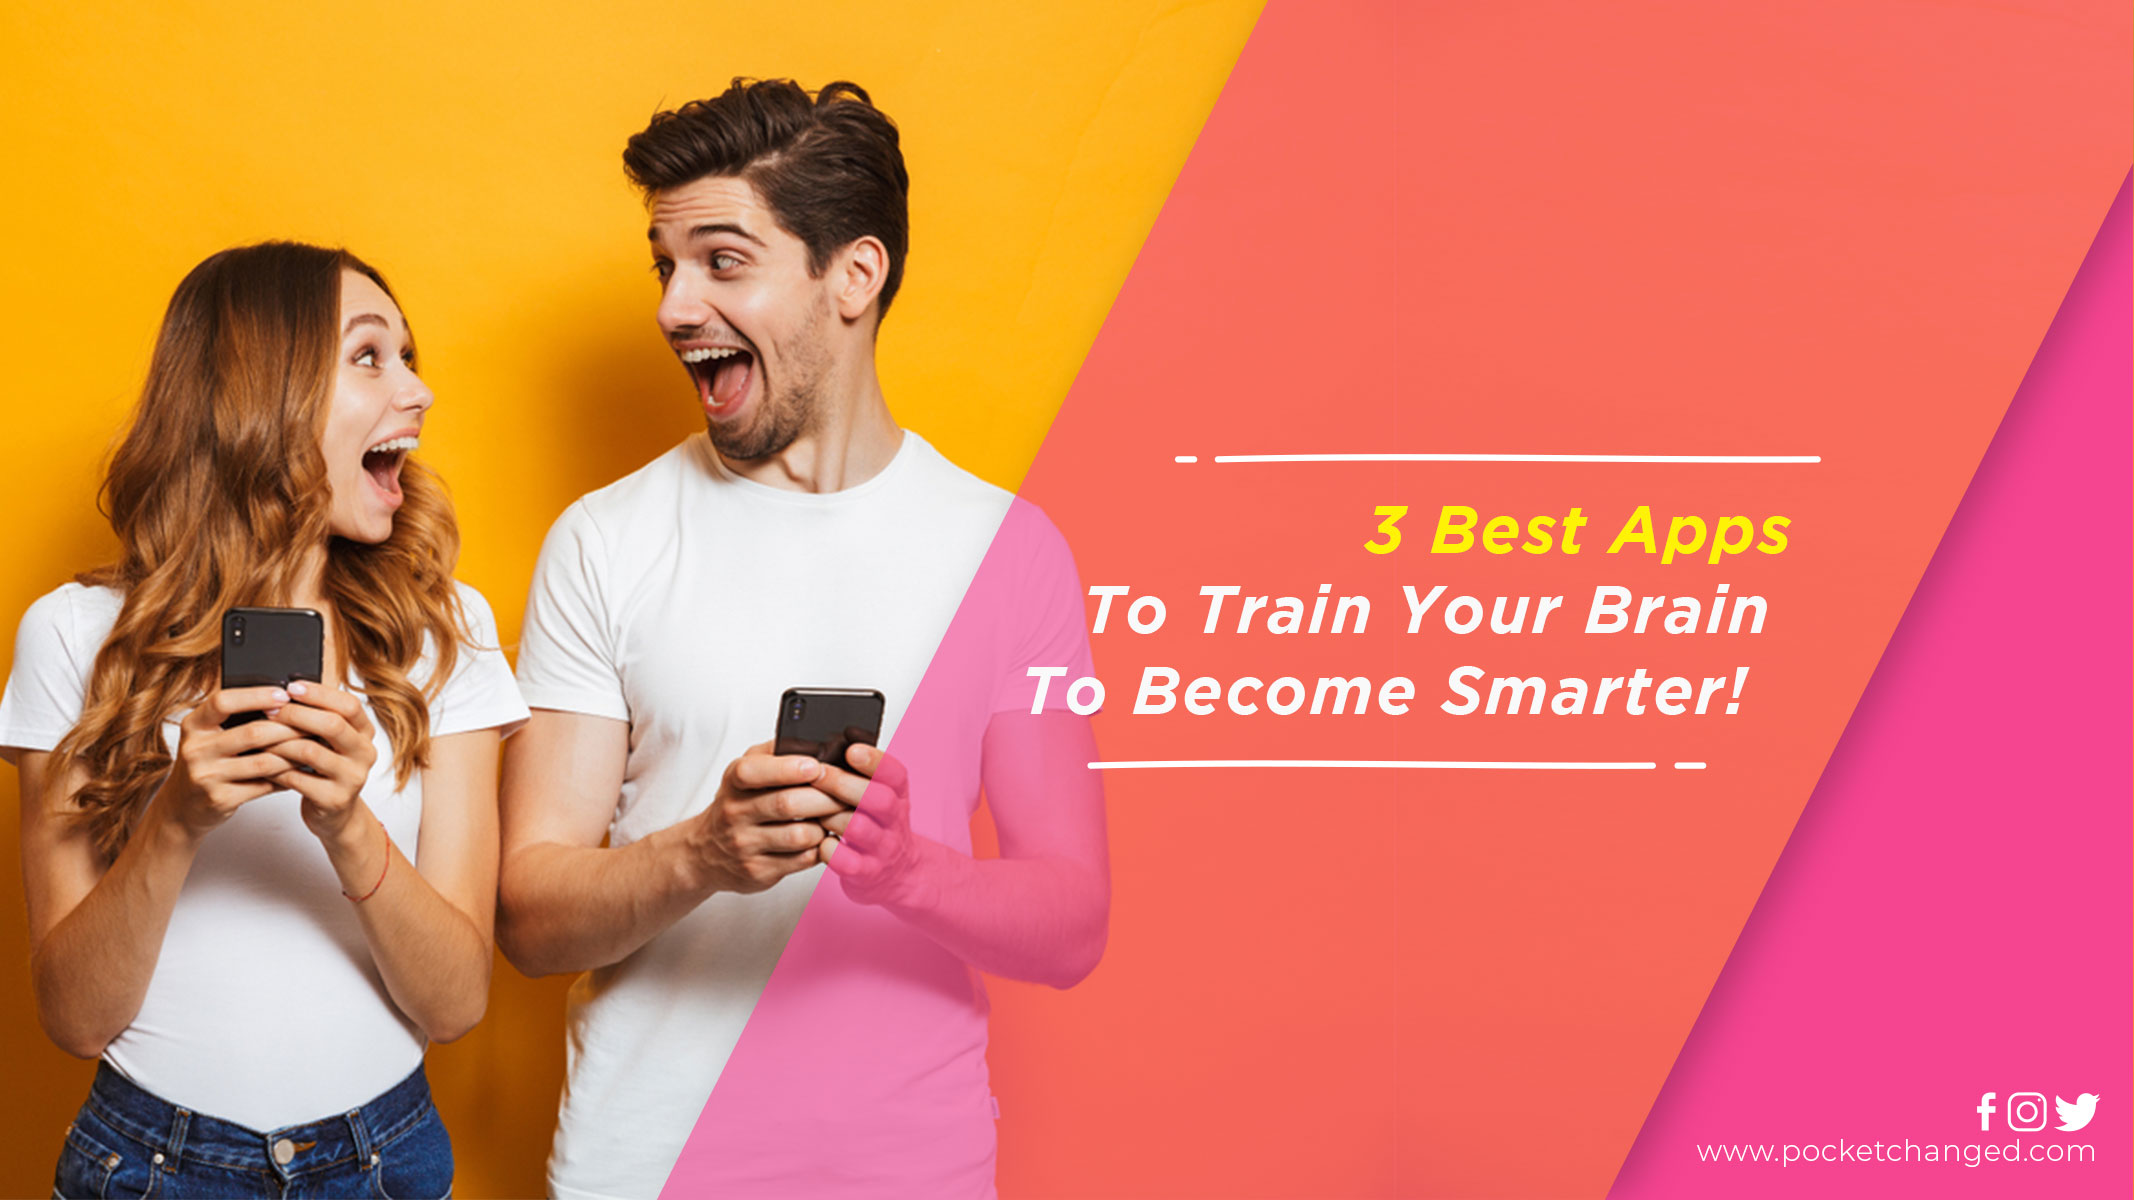 3-Best-Apps-To-Train-Your-Brain-To-Become-Smarter!